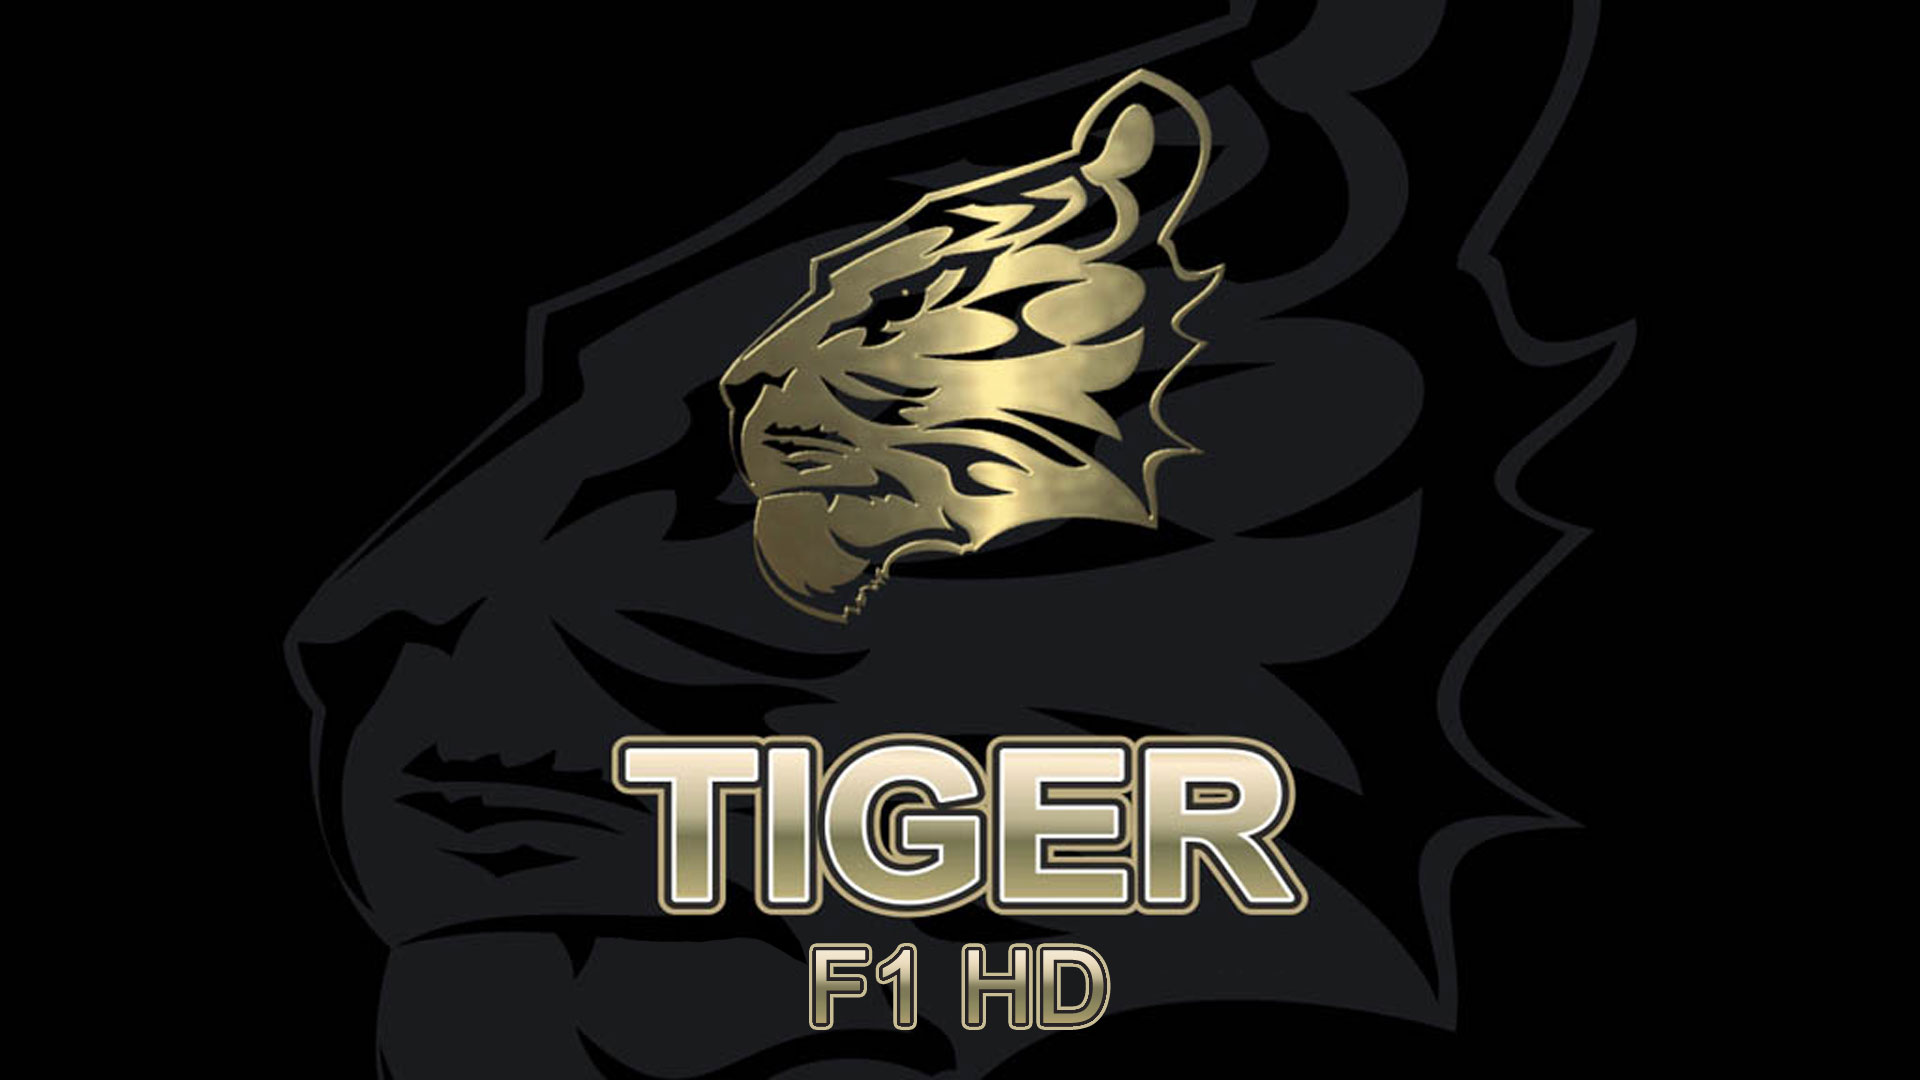 Tiger F1 HD Software New Update Firmware Receiver